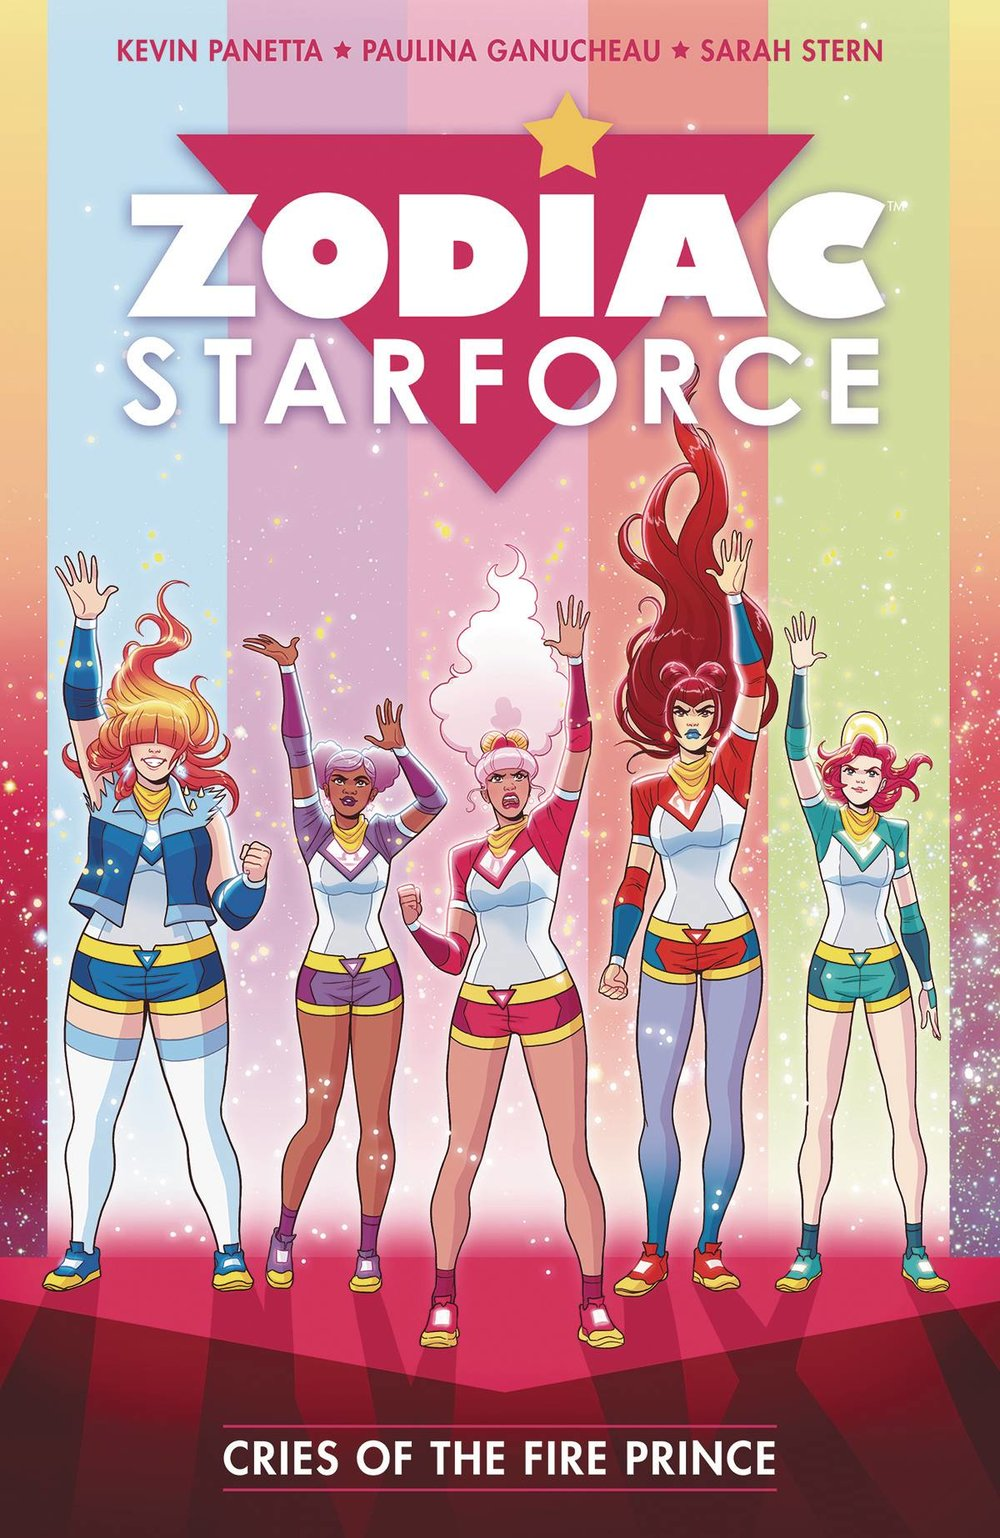 ZODIAC STARFORCE TP 2 CRIES OF THE FIRE PRINCE.jpg